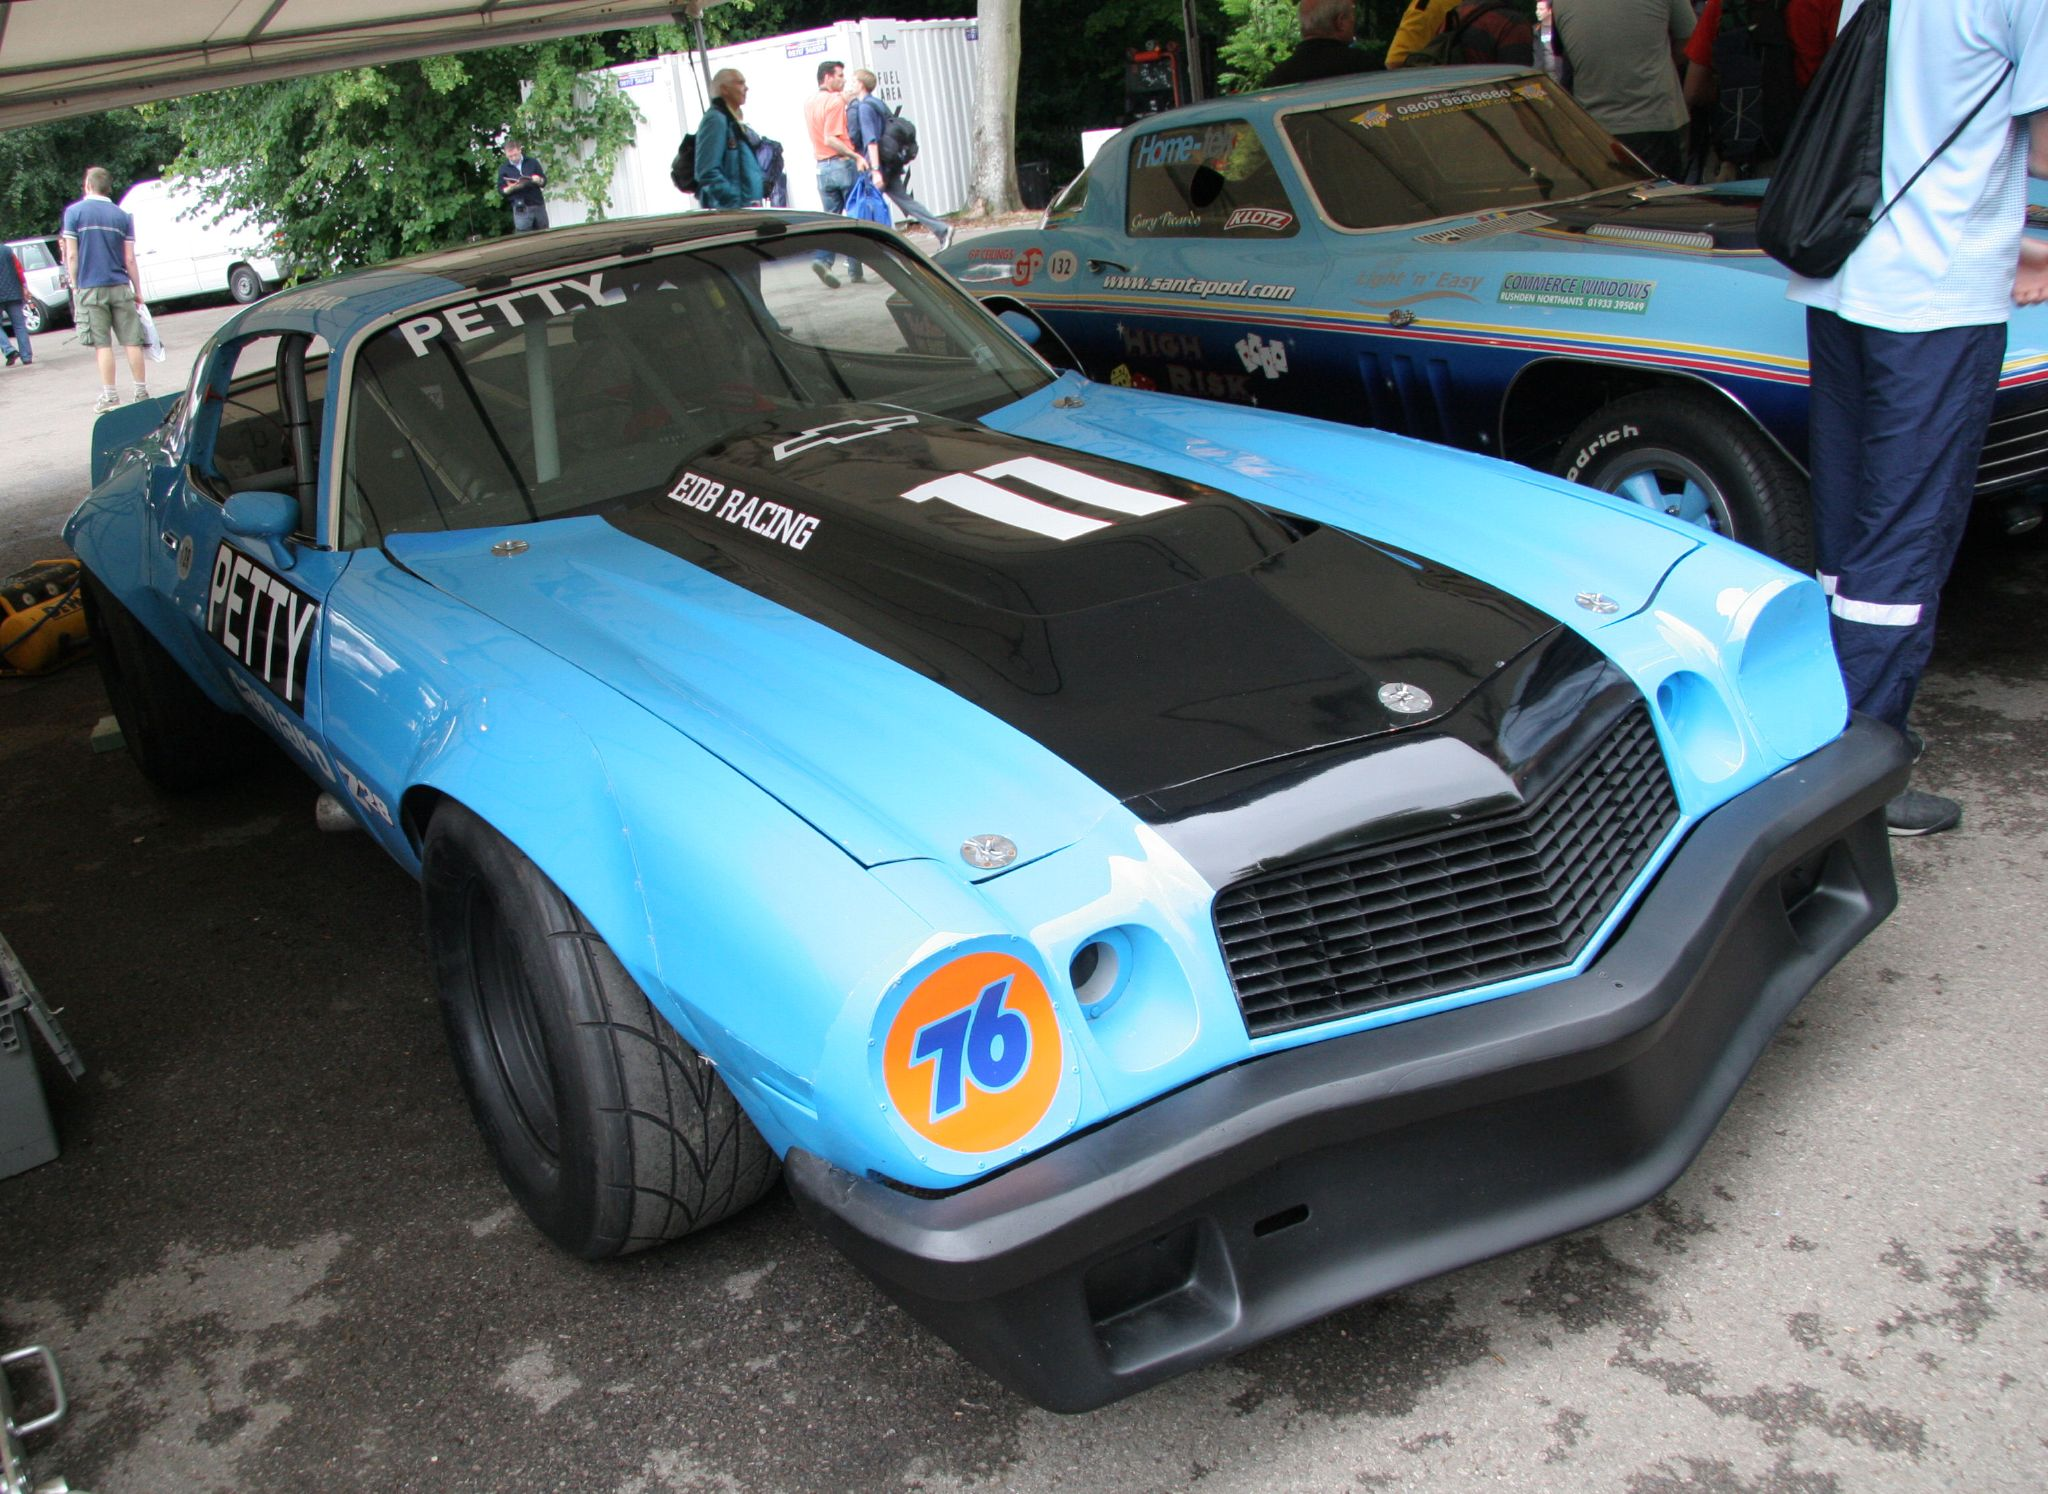 Iroc Z Wiki >> File:Chevrolet Camaro Z28 IROC 1977 - Flickr - exfordy.jpg - Wikimedia Commons